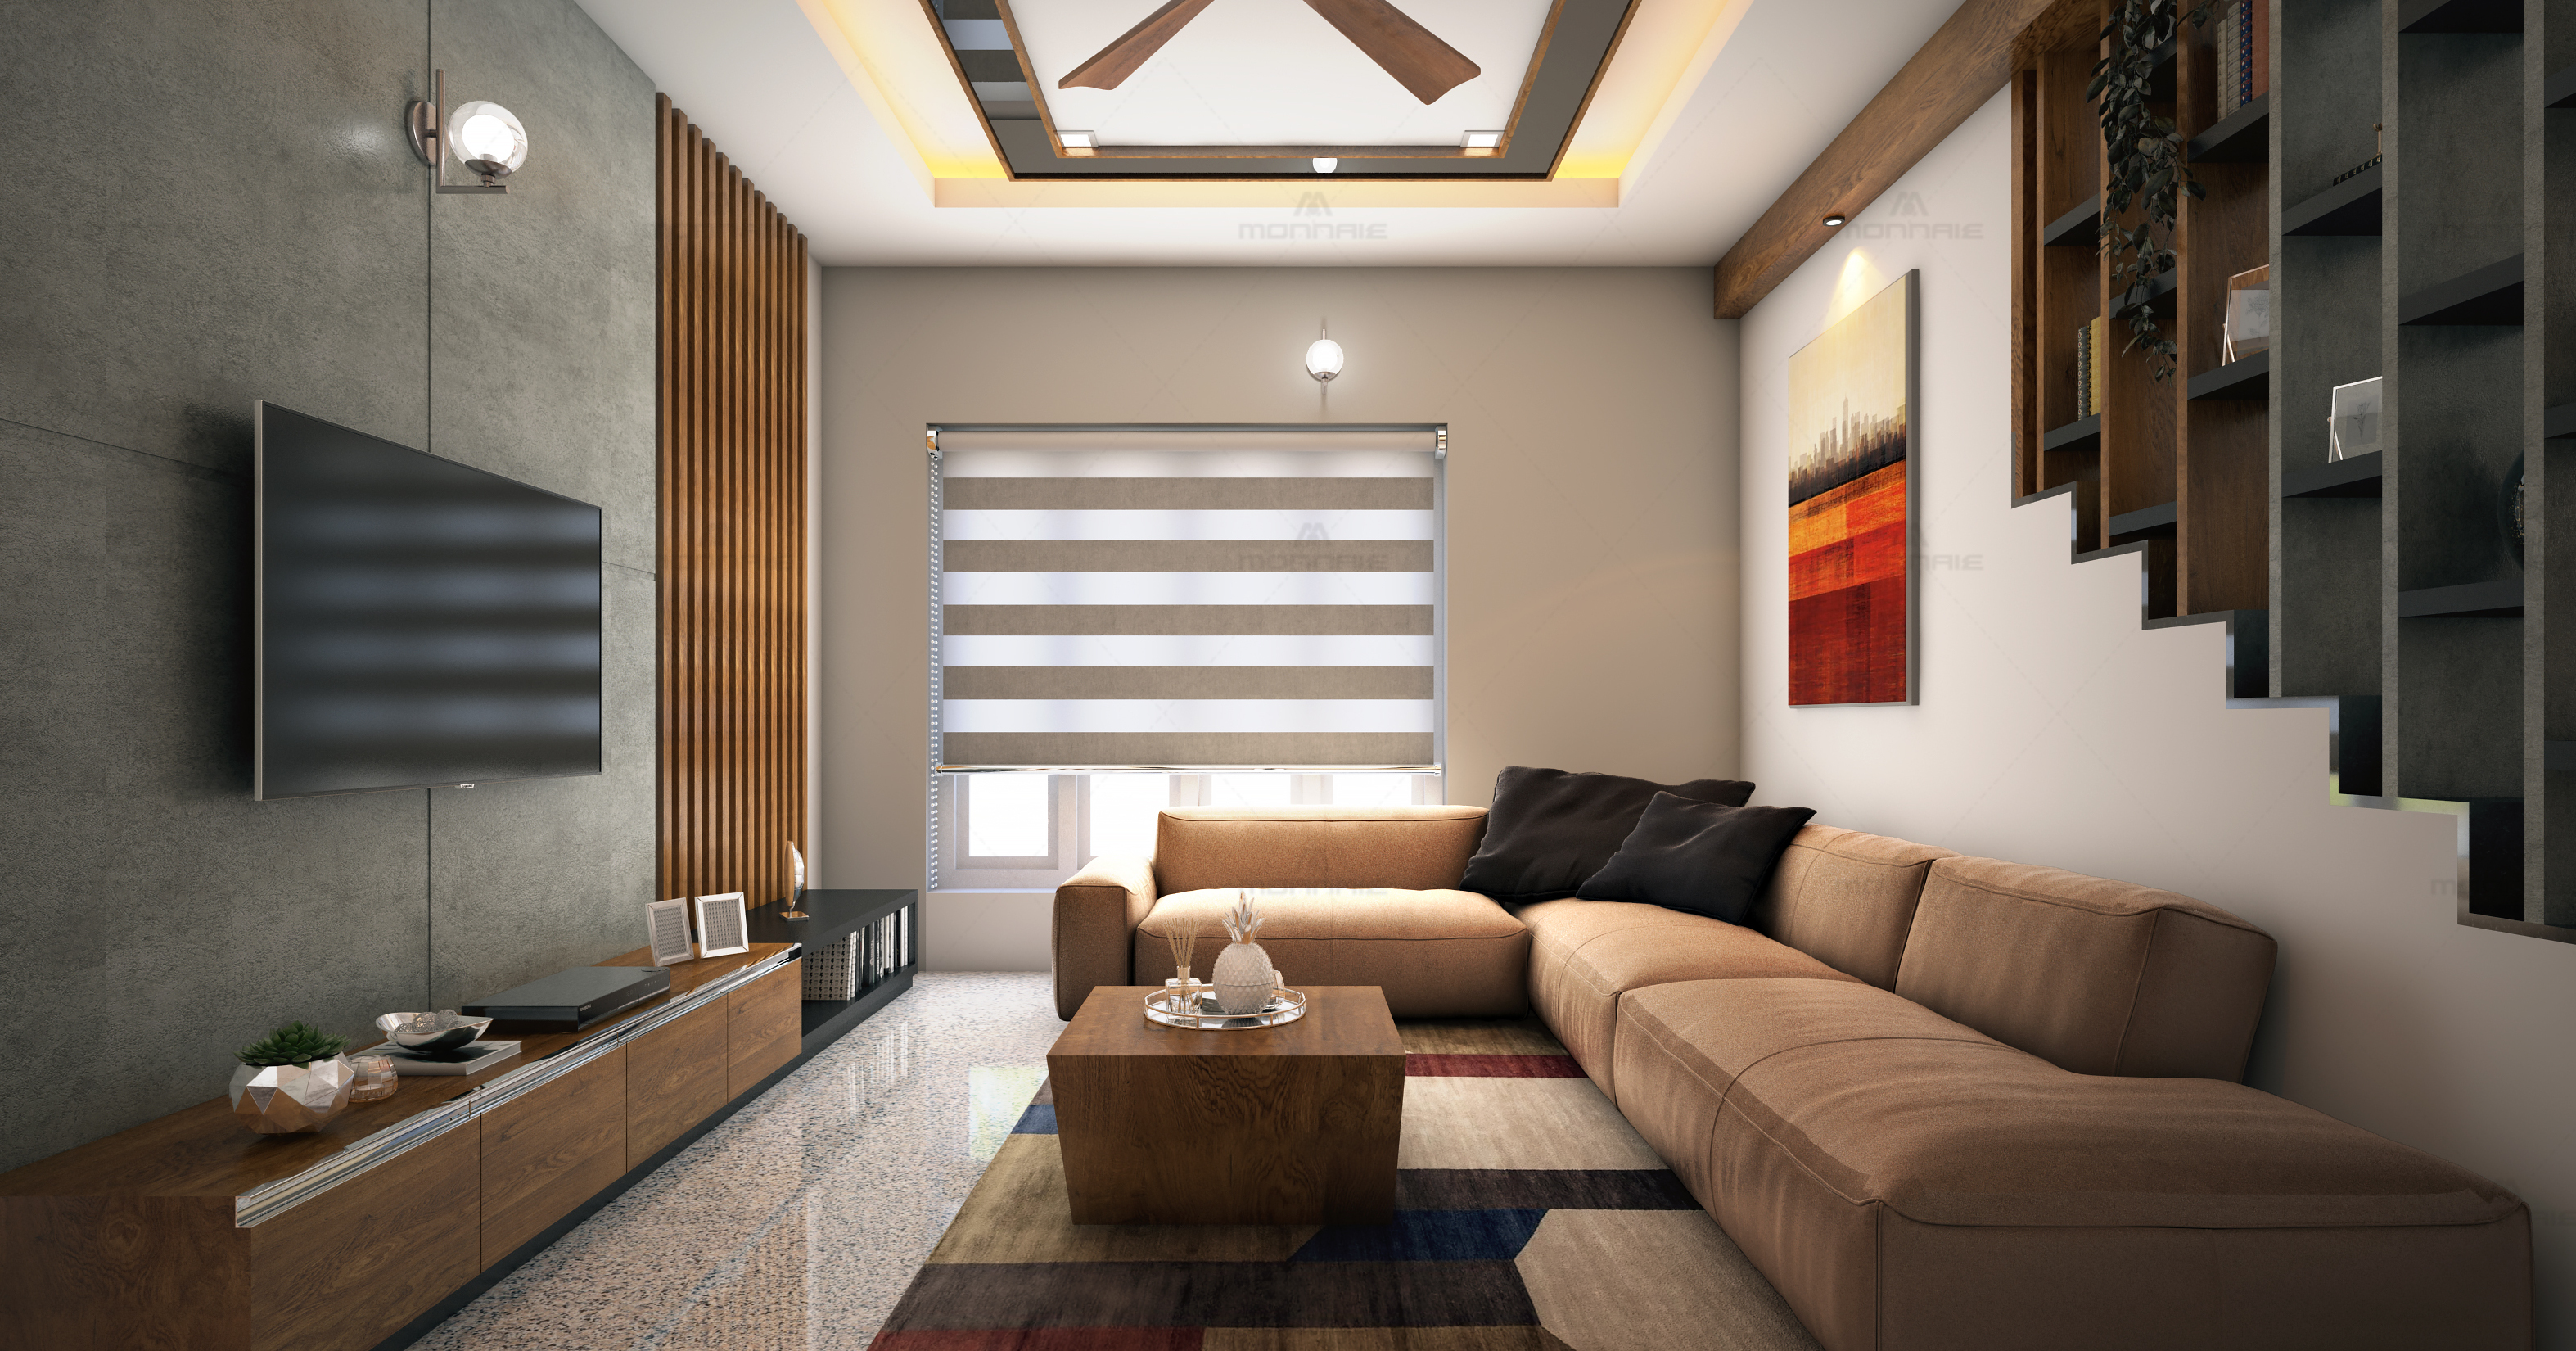 Luxury Living Room Design Ideas, Kochi, Kerala